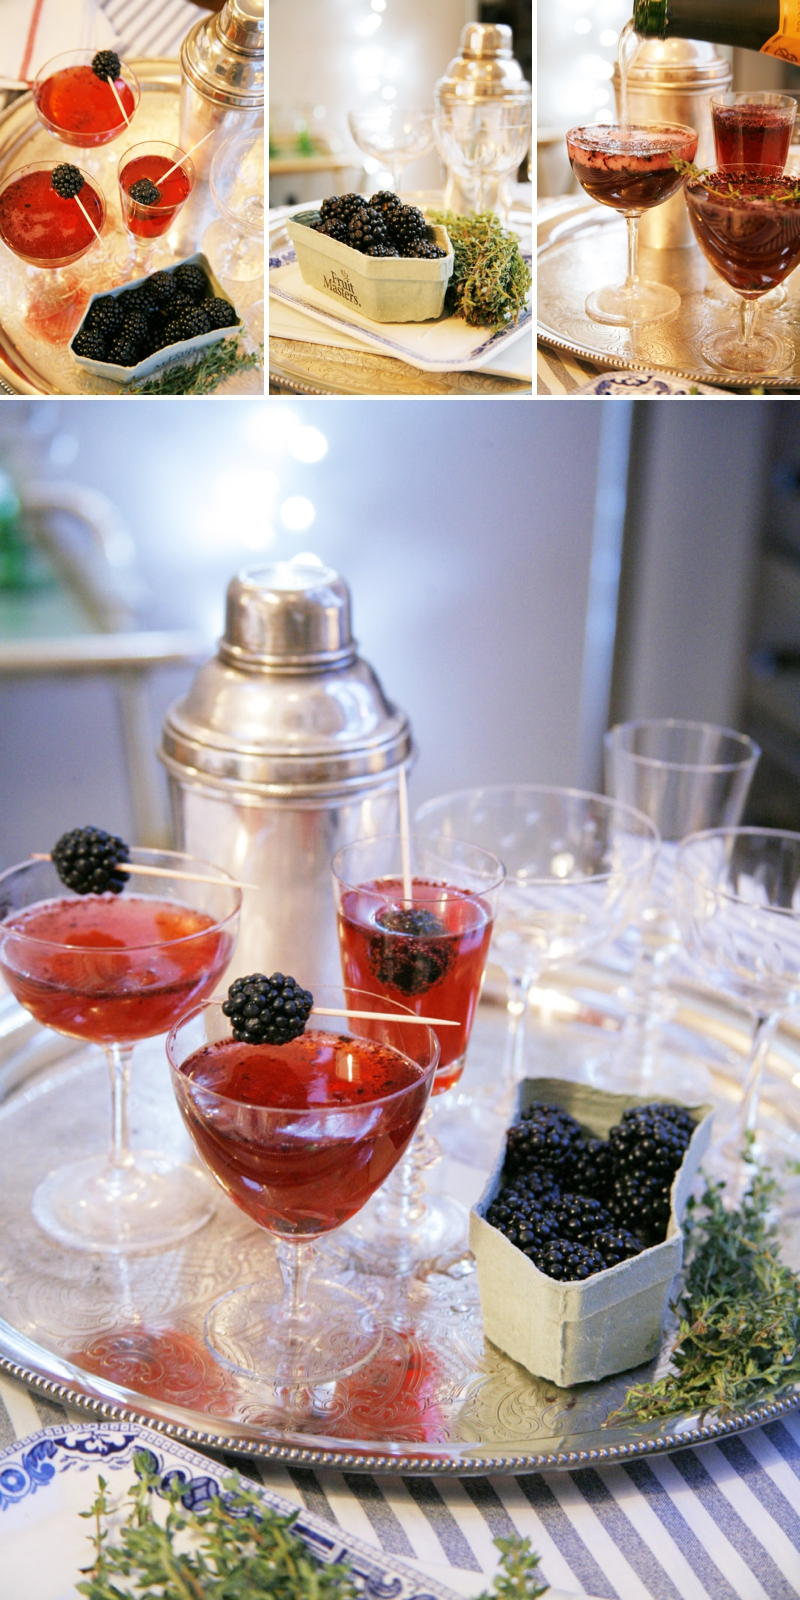 Cocktail recipes for your hen party or wedding_0158